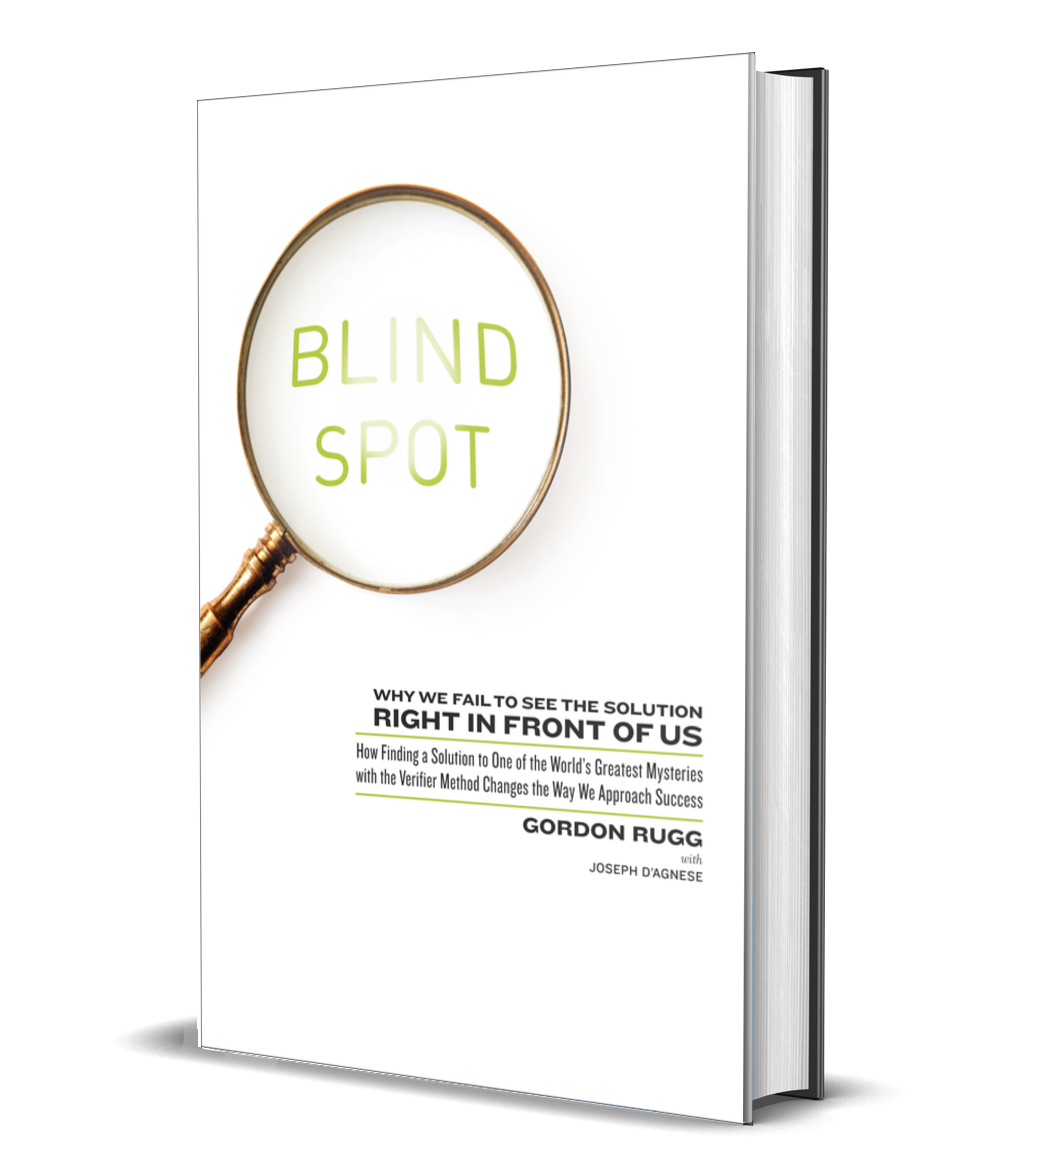 BLIND SPOT BY GORDON RUGG JOSEPH D'AGNESE